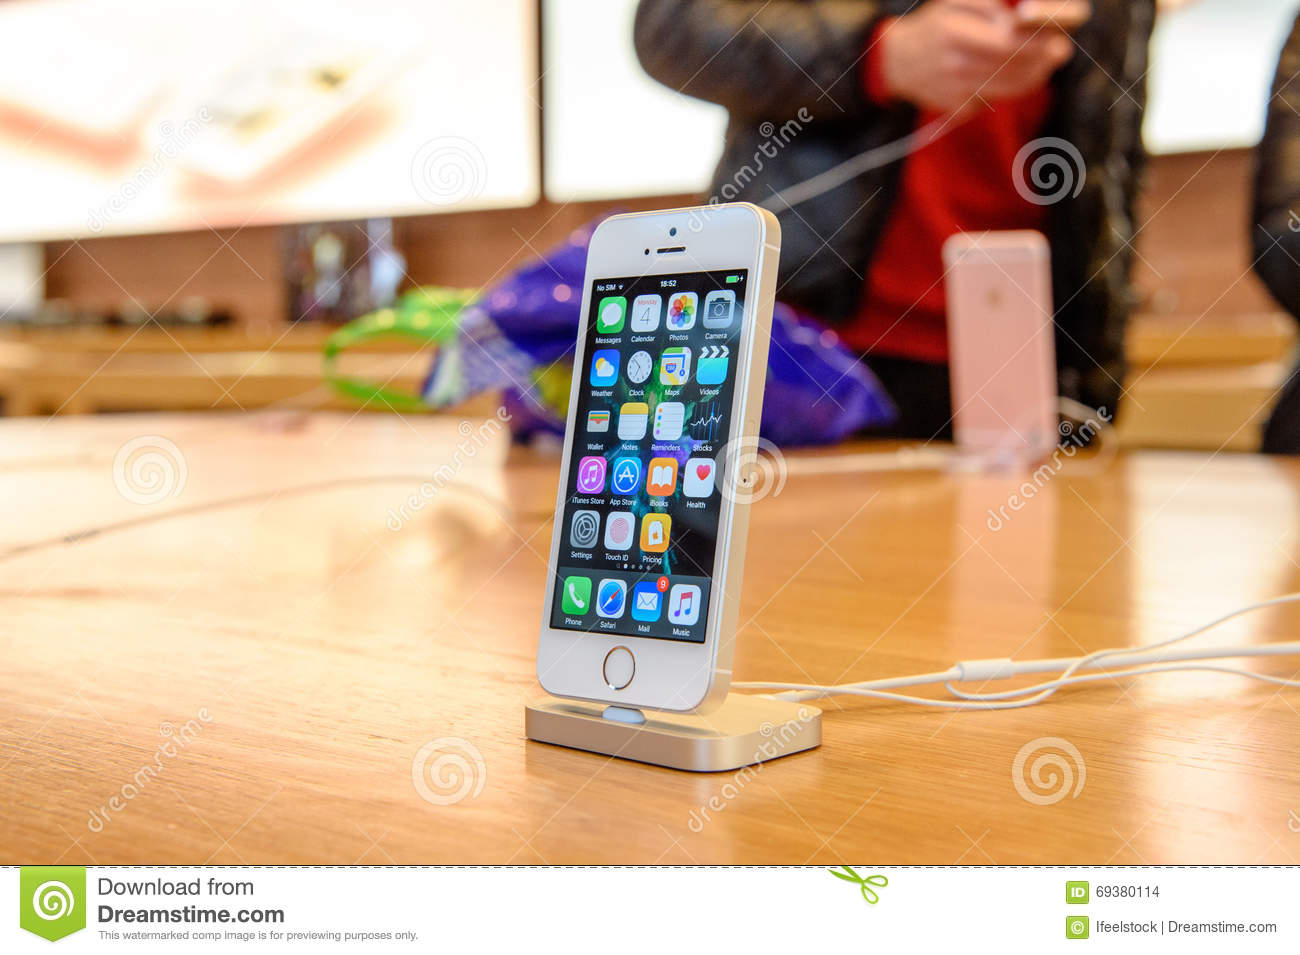 Cheap Iphone Docking Station